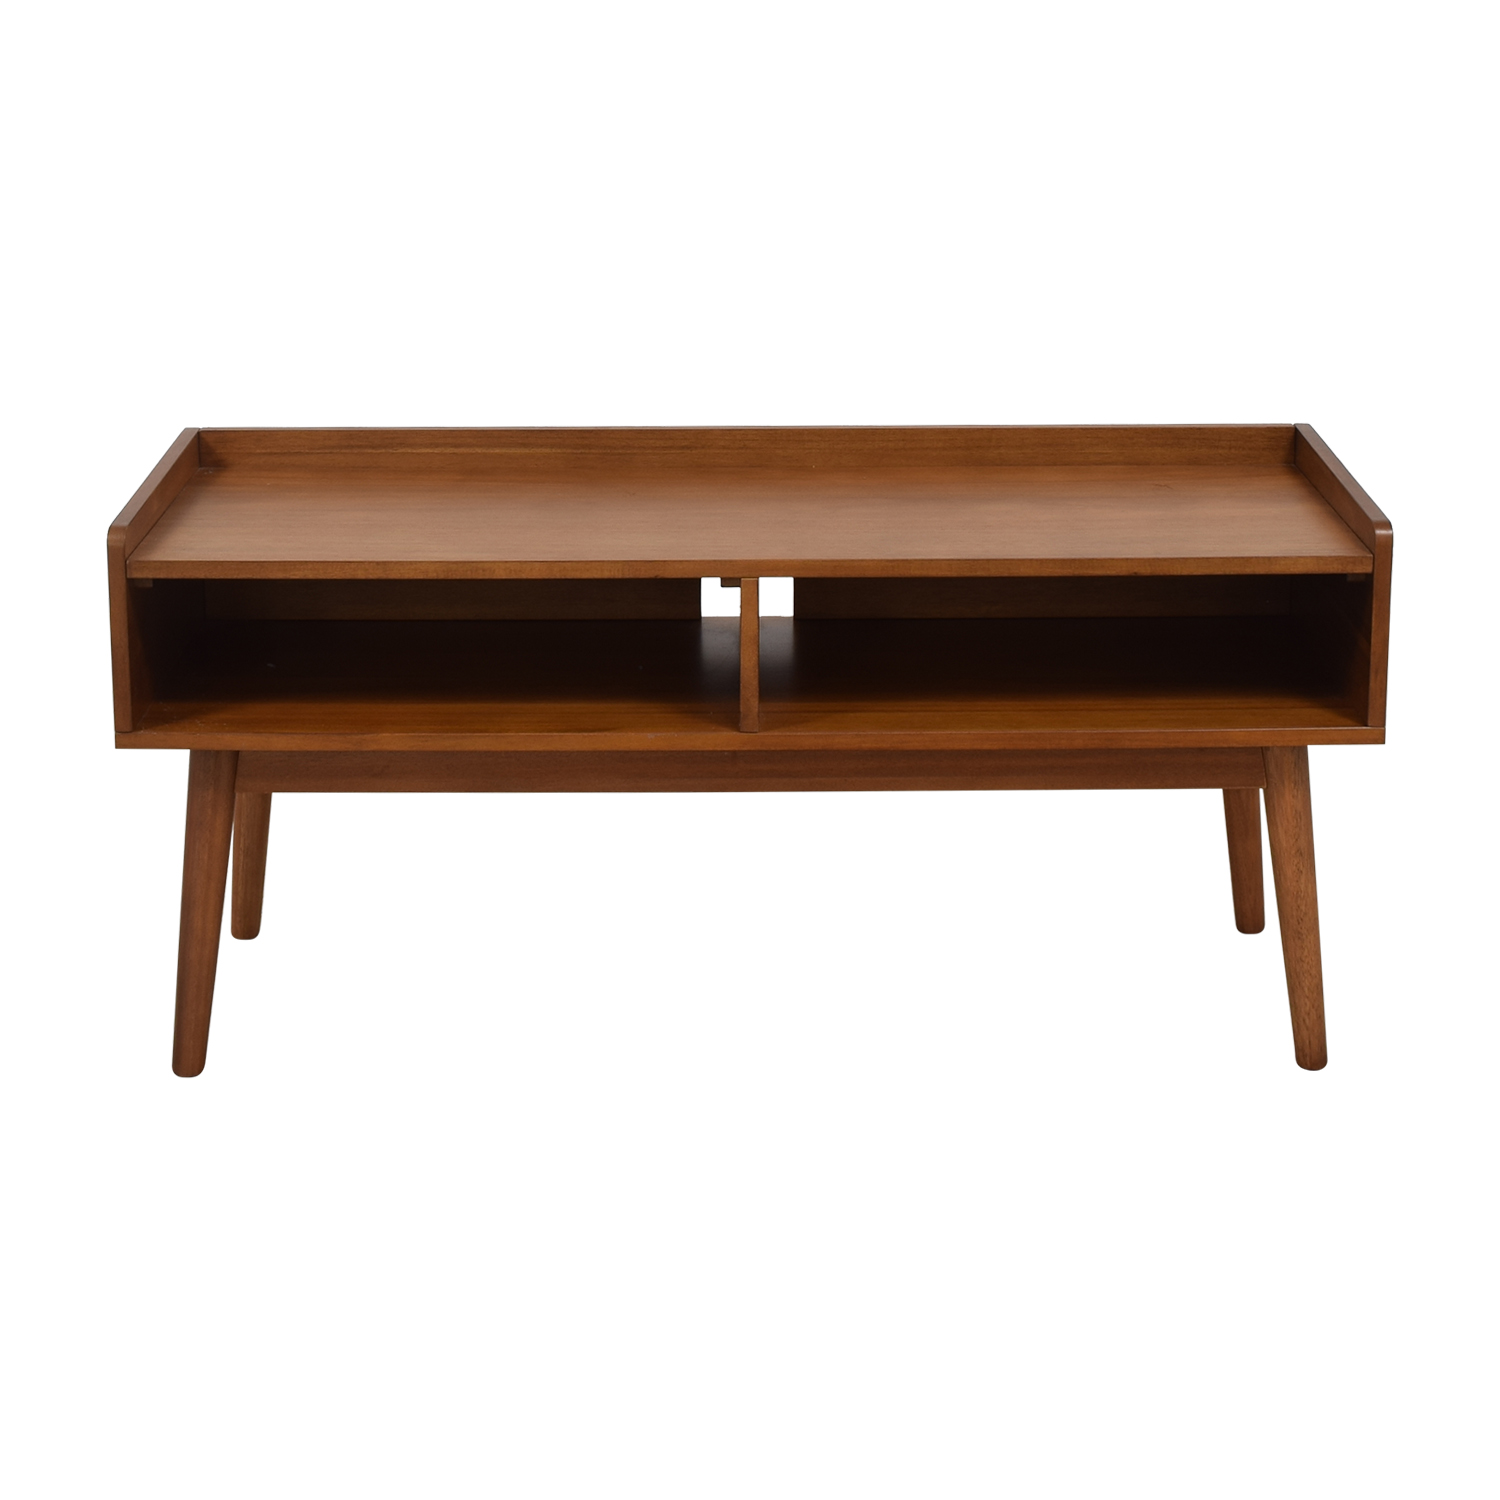 West Elm West Elm Maggie Media Console dimensions